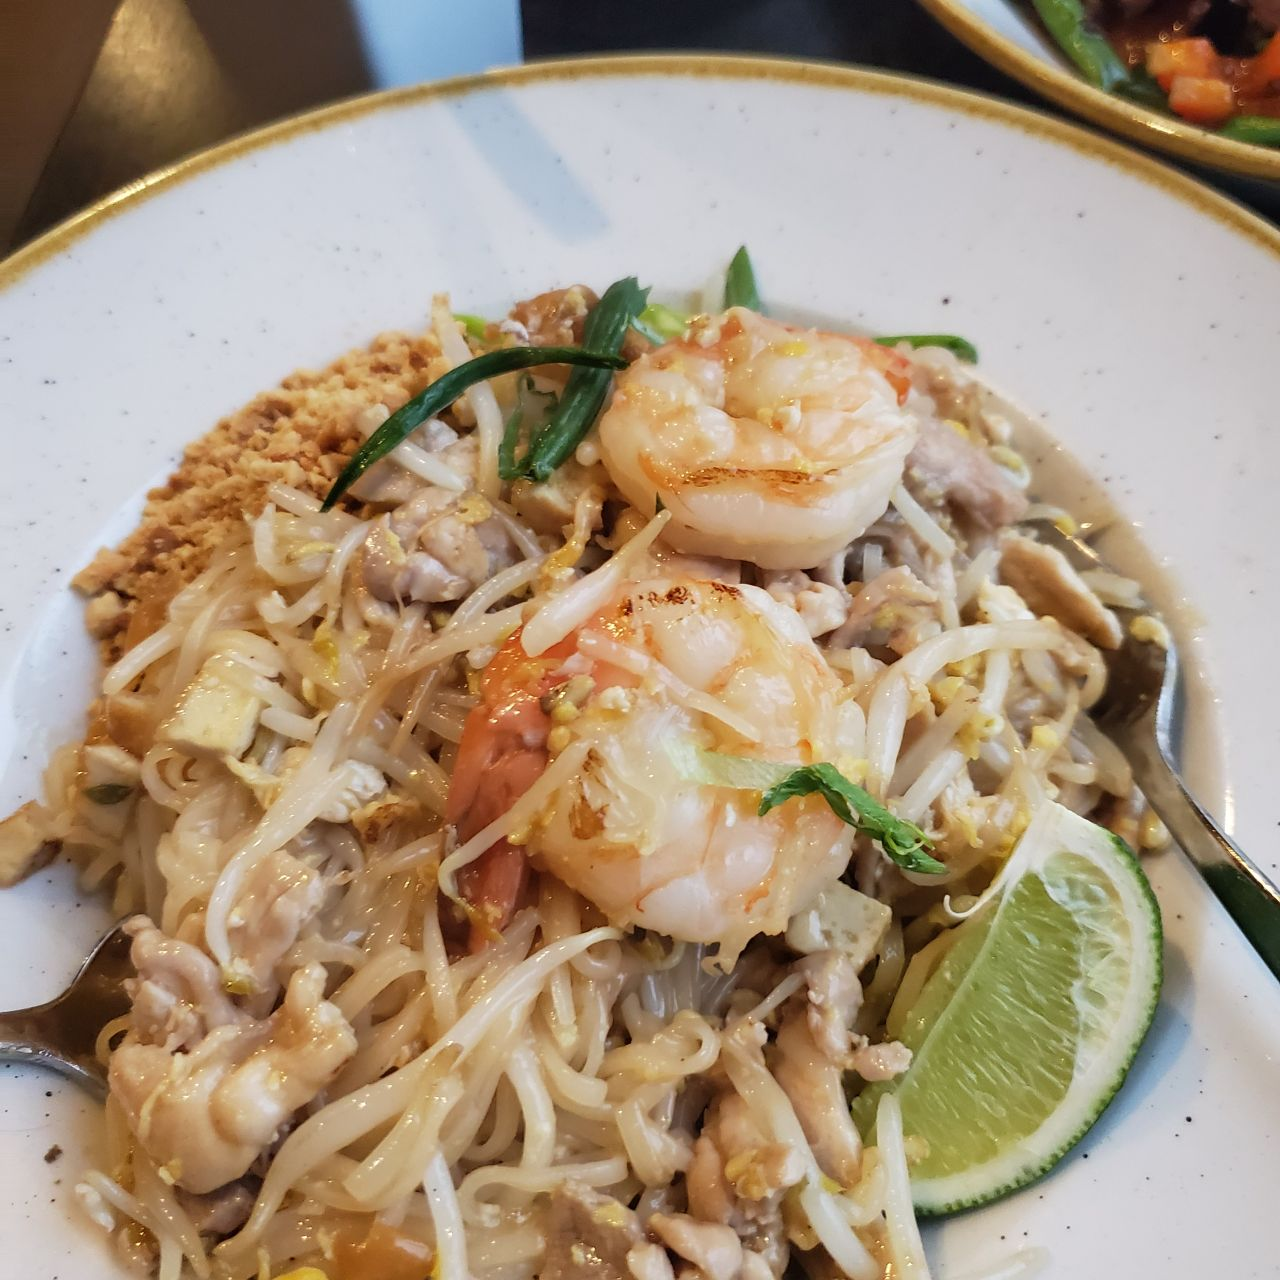 Niagara's Finest Thai - Niagara-on-the-Lake, ON | OpenTable